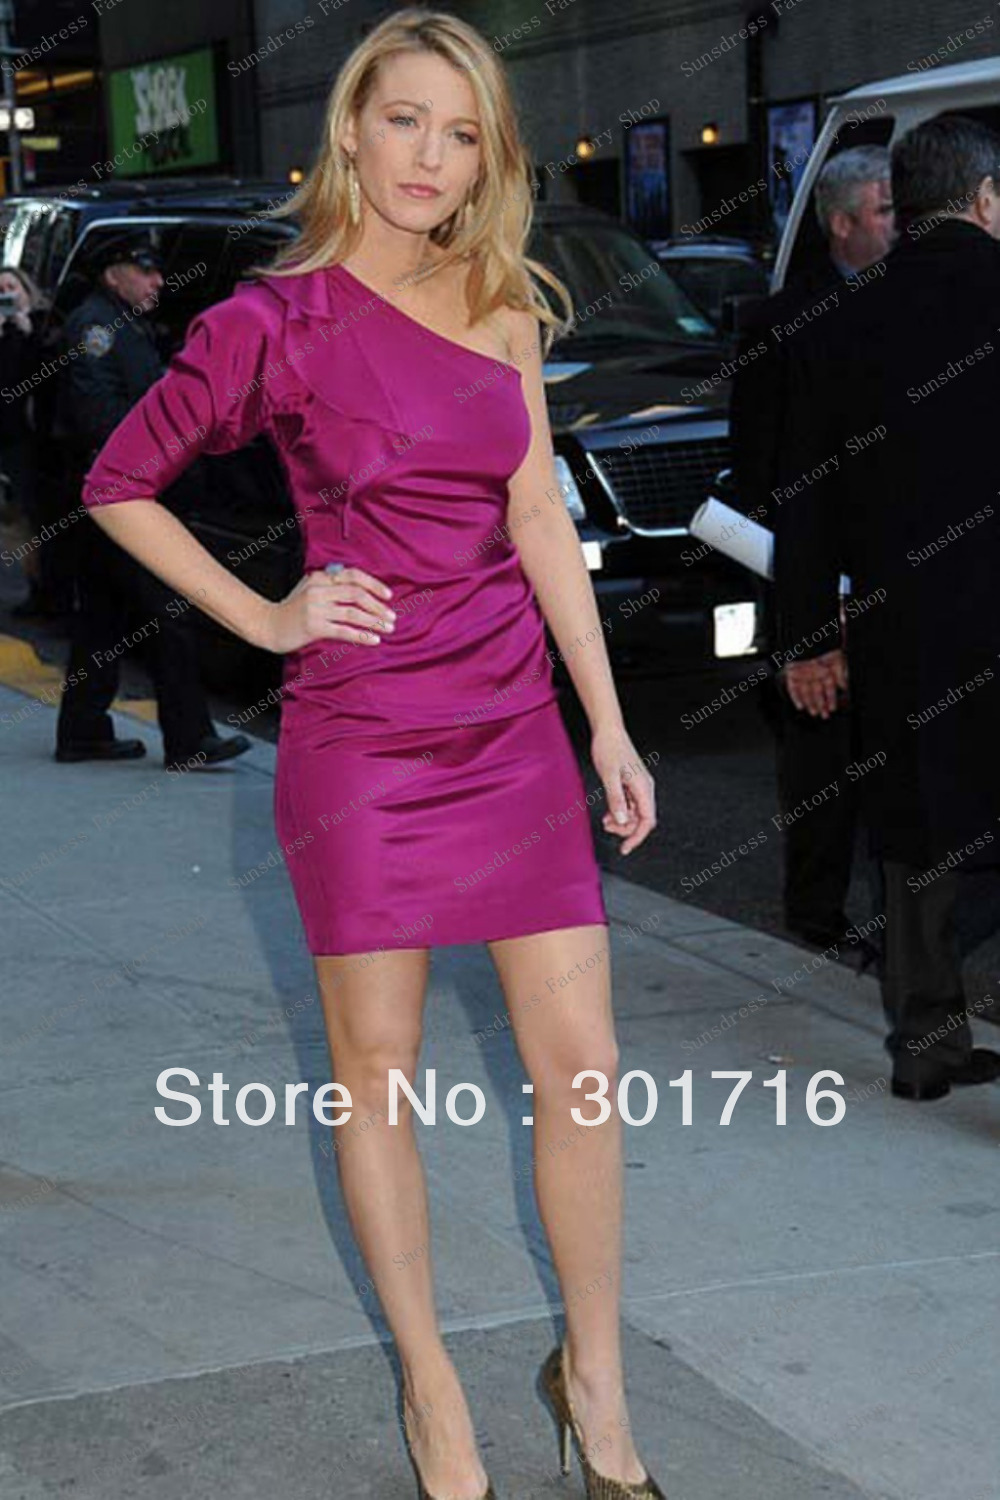 Blake Lively Peach Red Carpet Dress One Shoulder Sheath Emmy Awards 2009 Gossip Girl-in Celebrity-Inspired Dresses from Apparel & Accessories on Aliexpress.com